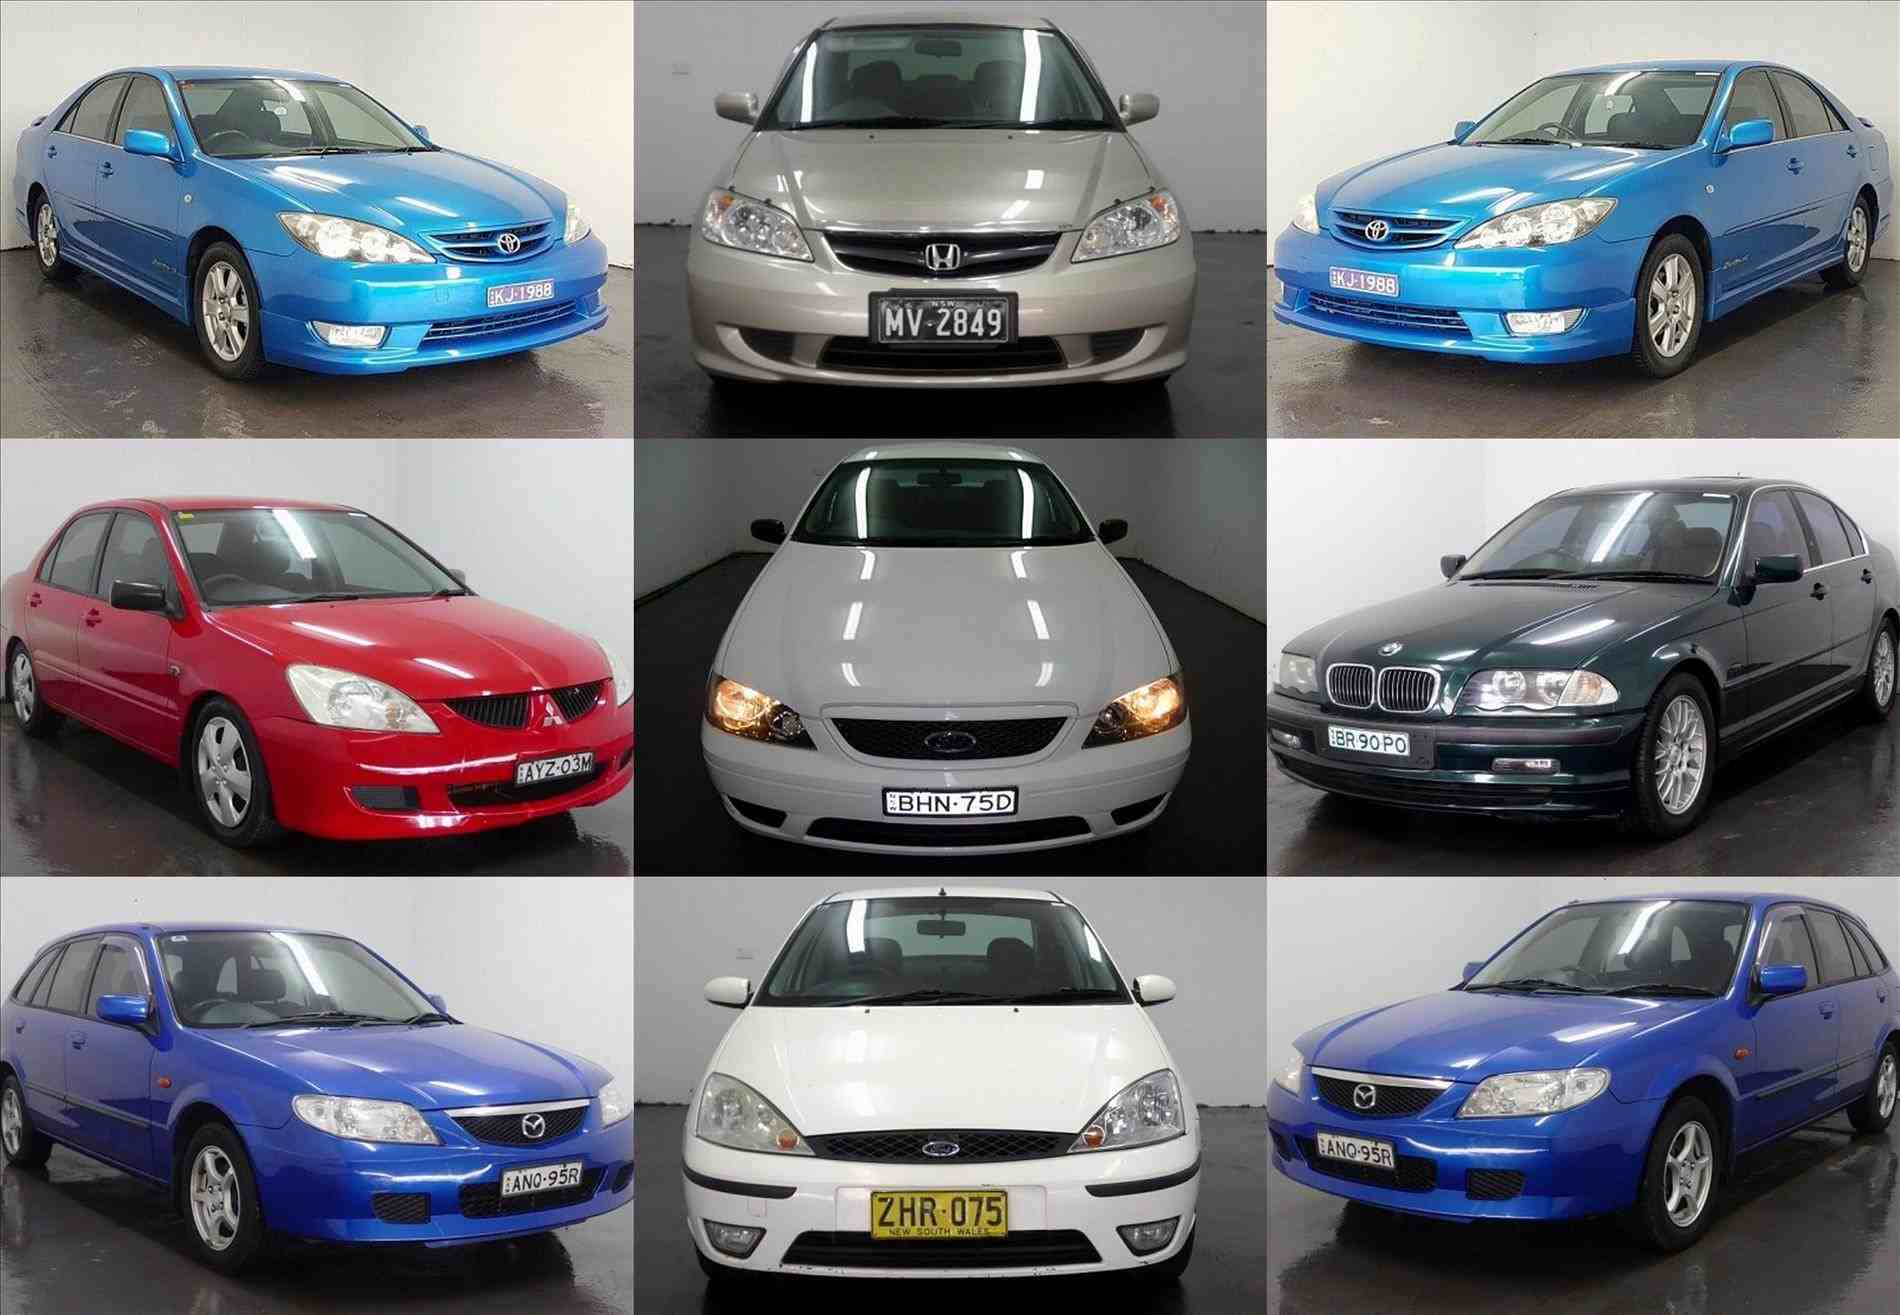 p best used cars to under 6000 bud in sydneyrhaus au youtuberhyoutube youtuberhyoutube best used cars